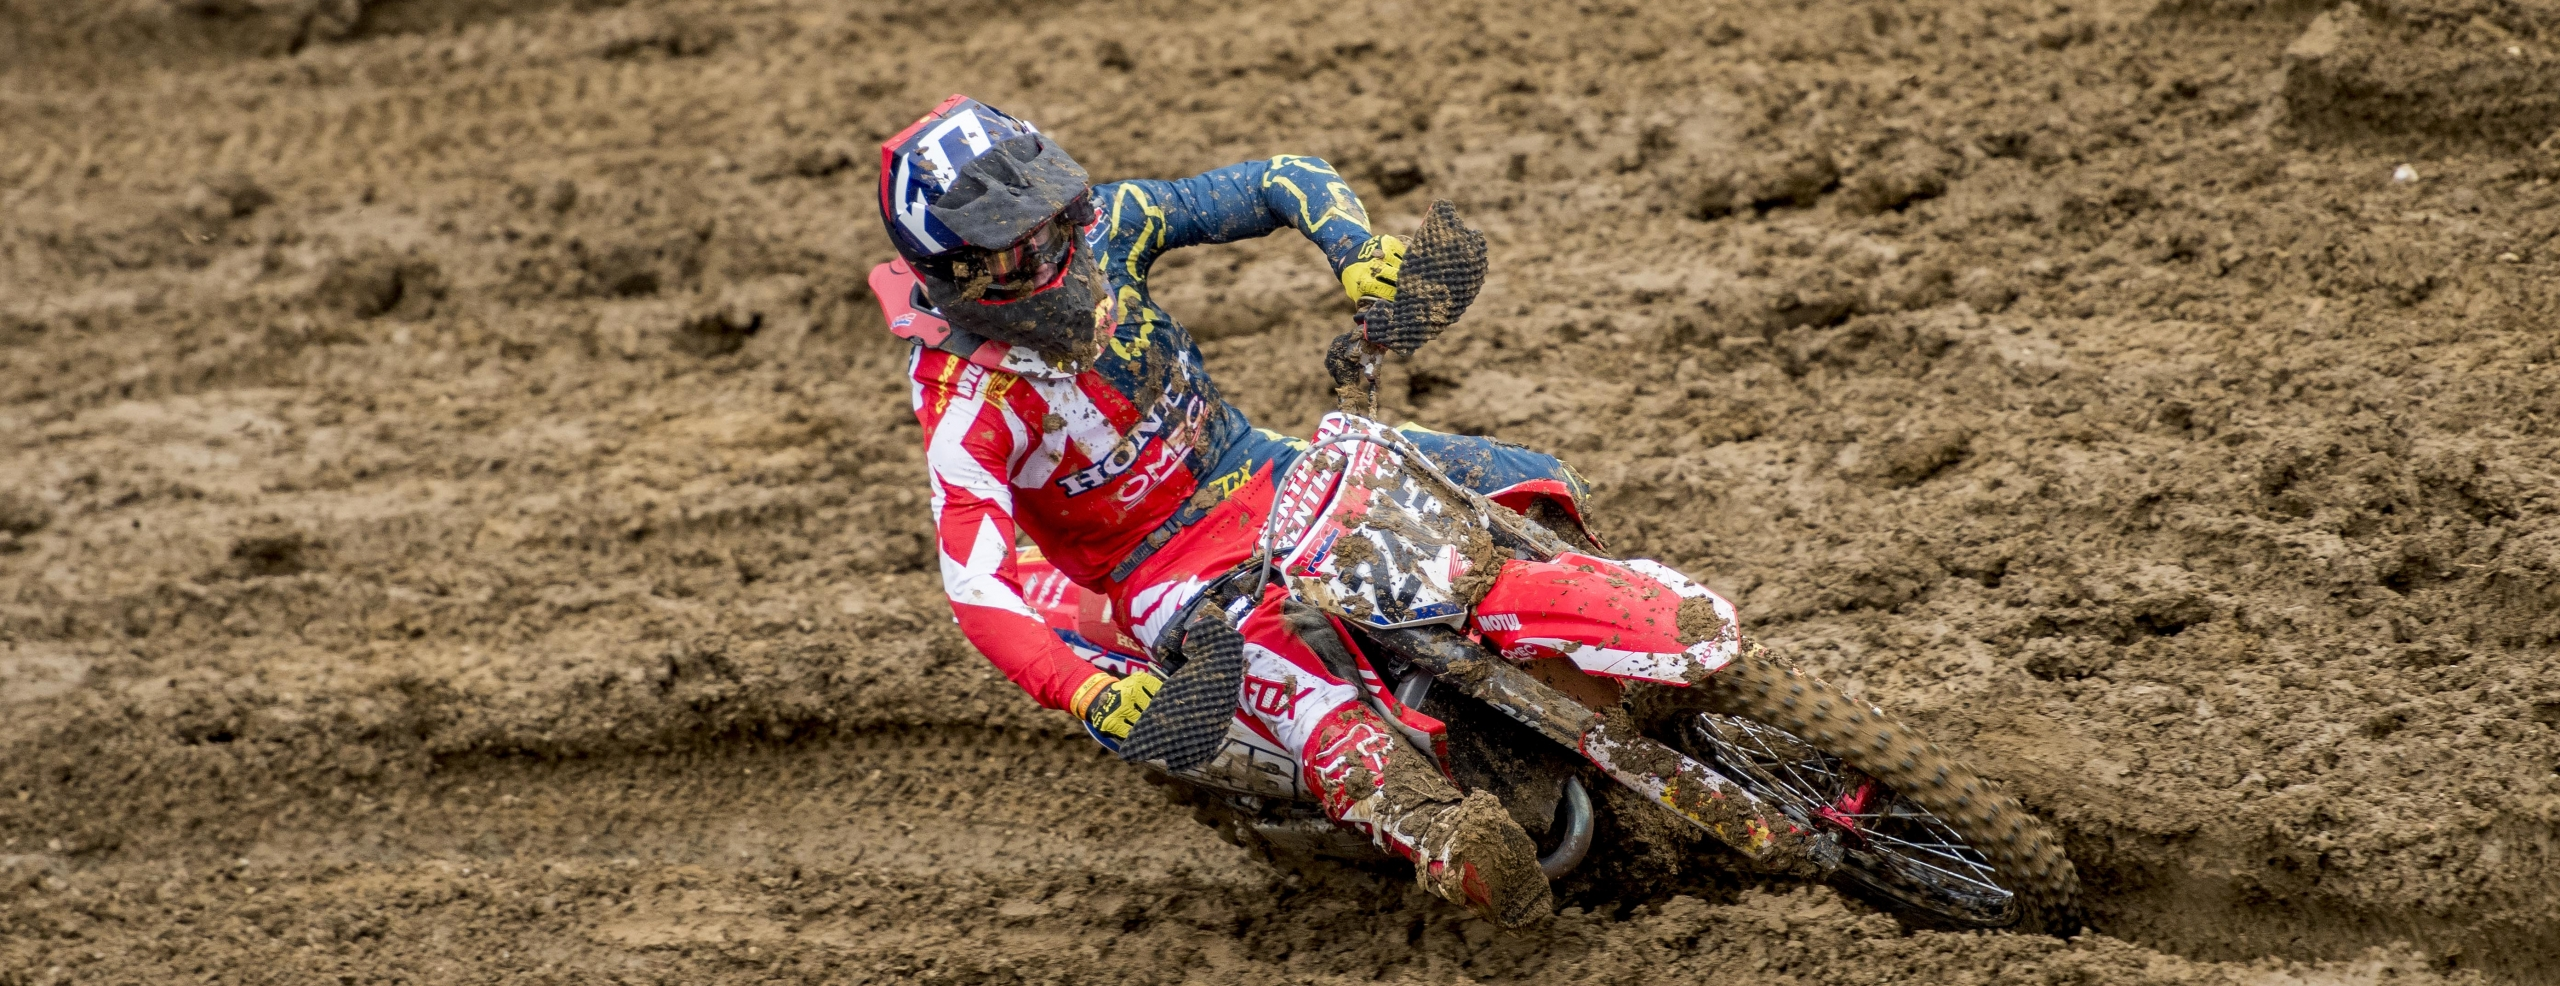 Gajser ends season on podium